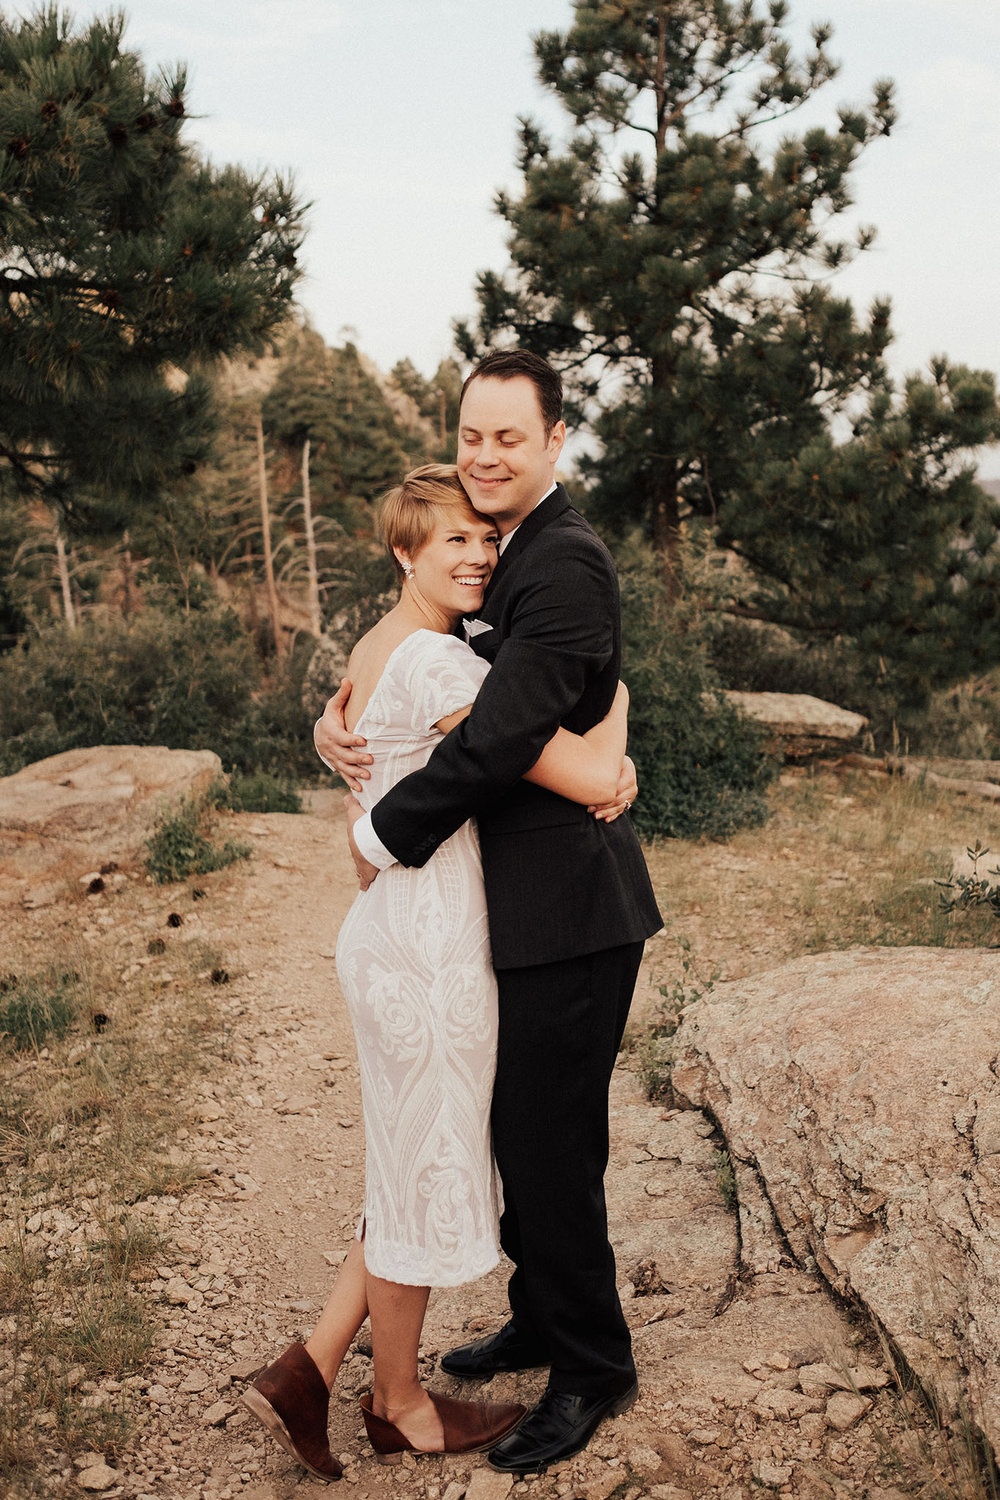 Arizona-Intimate-Elopement-Adventure-Photographer-Mount-Lemmon (15).jpg